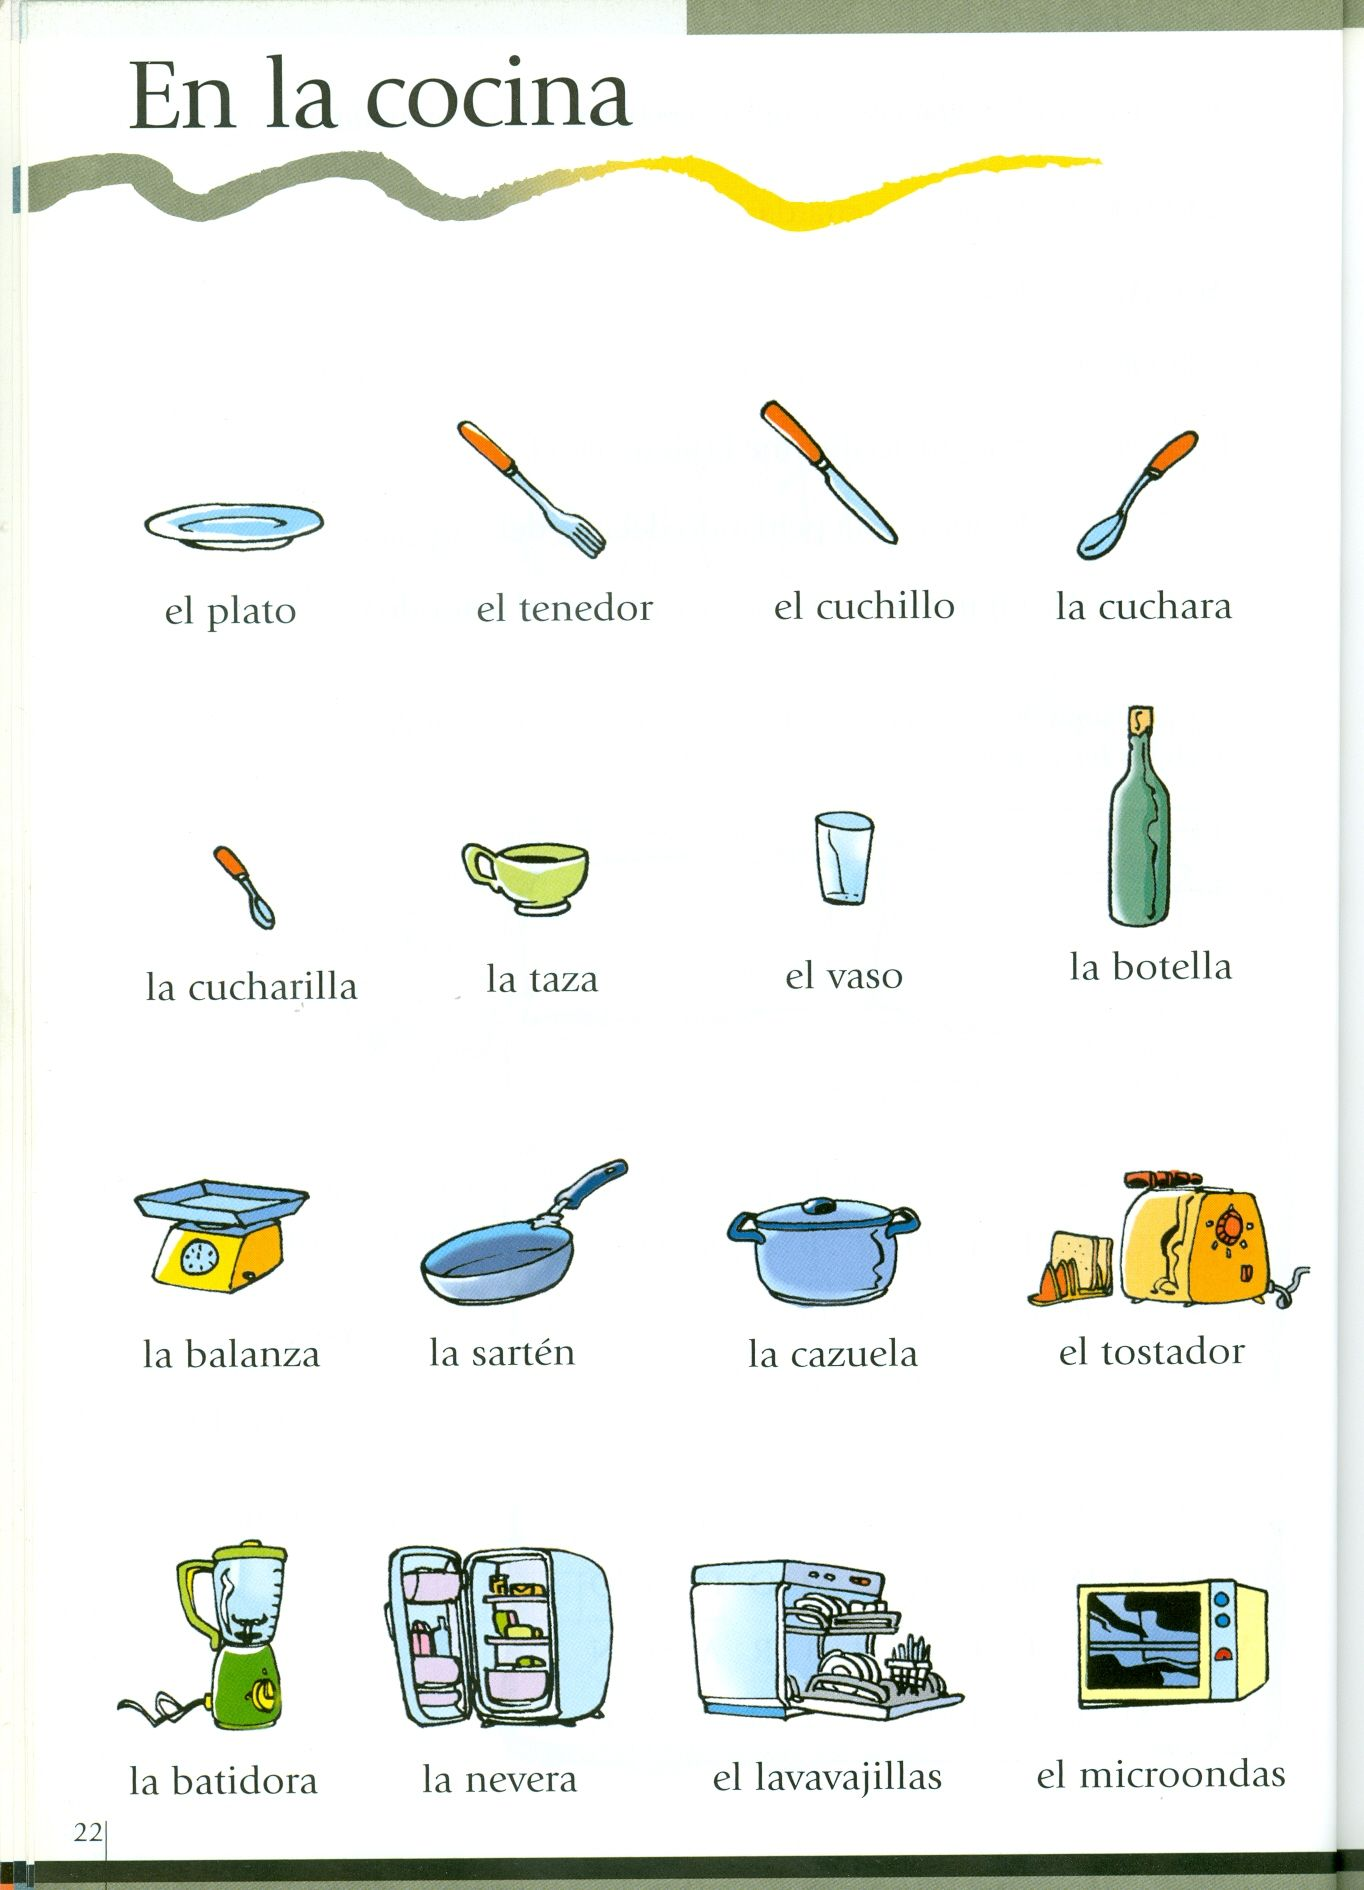 En la cocina practica espa ol vocabulario y ortograf a for Vocabulario cocina frances